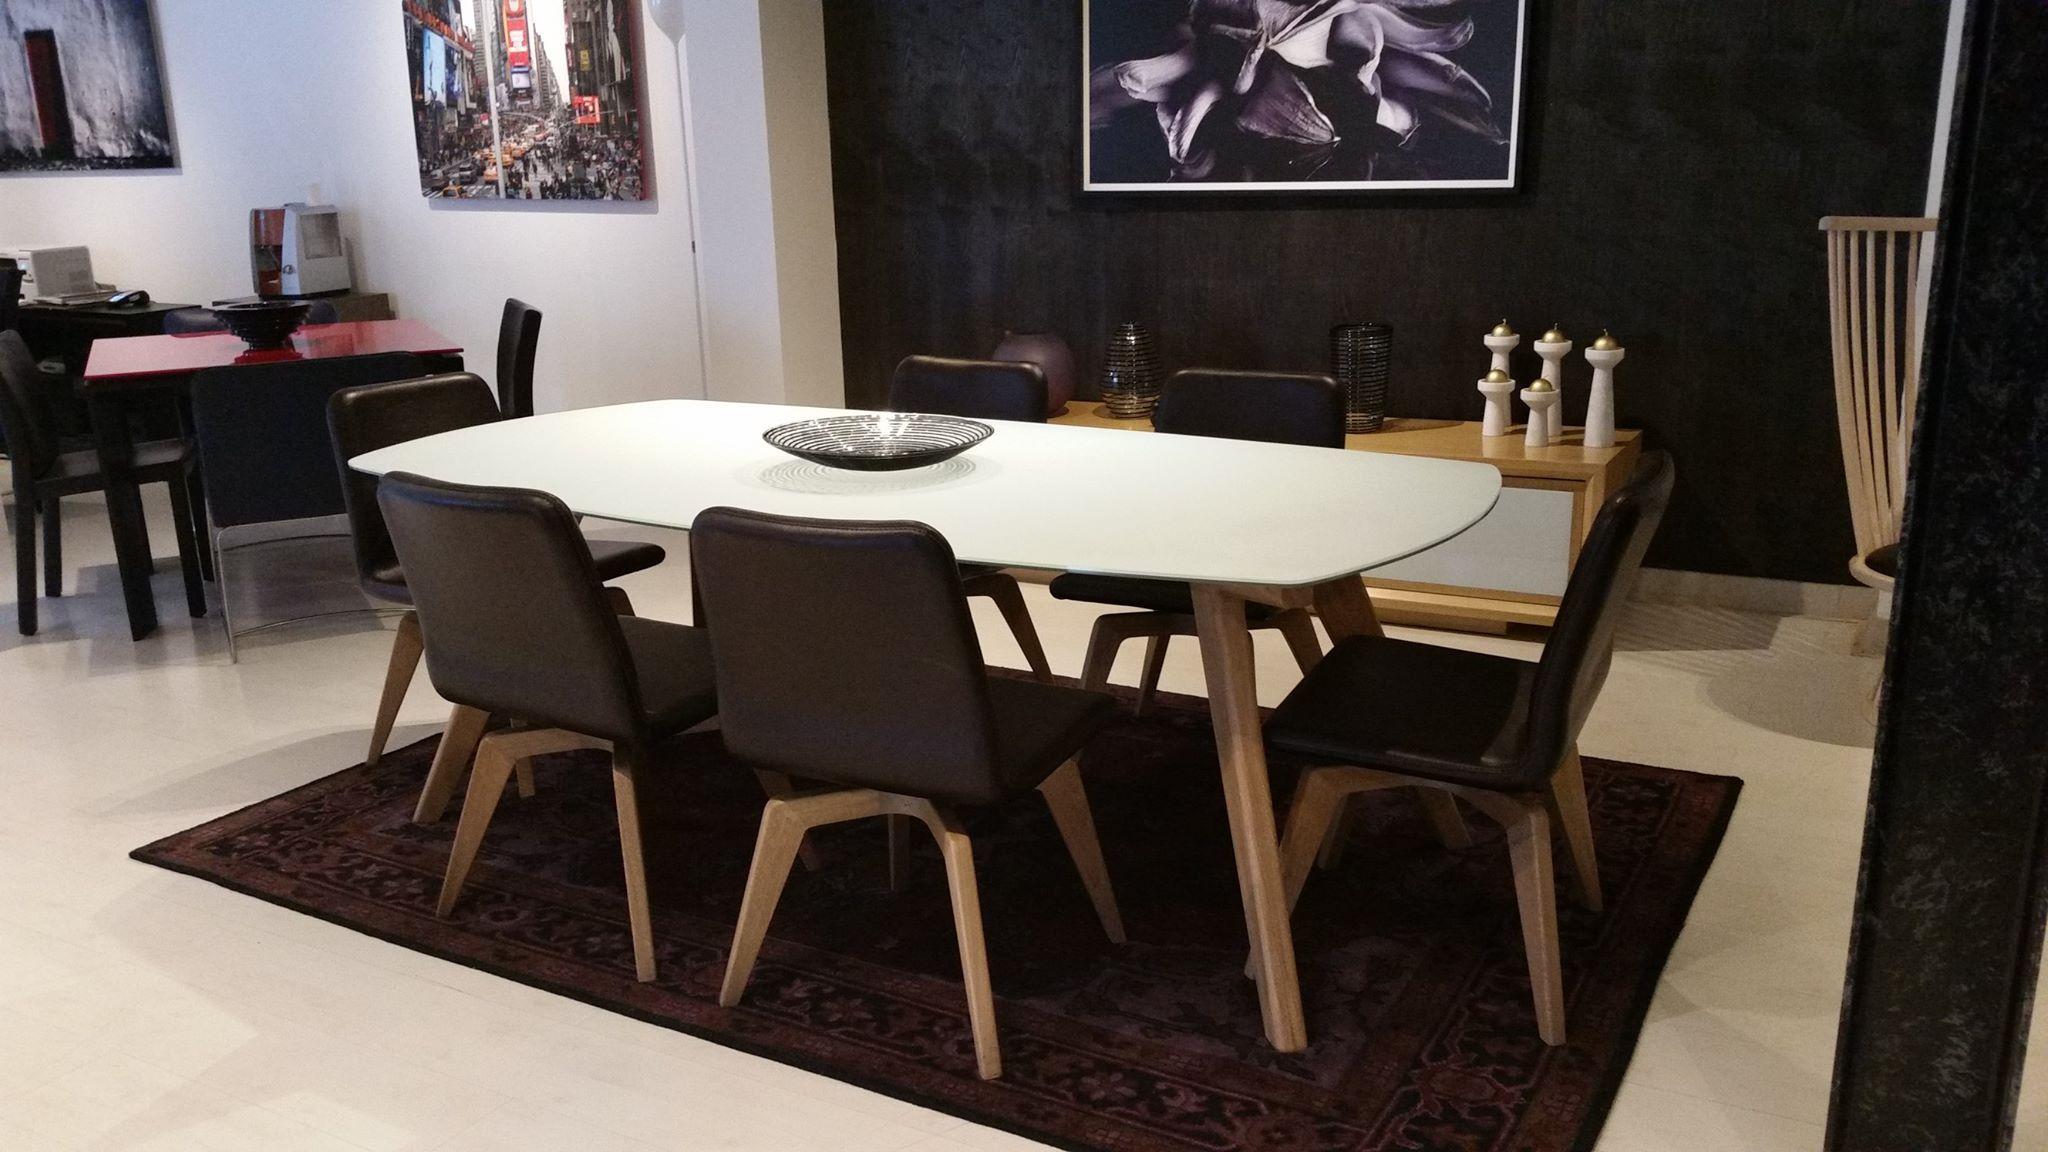 Muebles Zientte - Zientte Muebles Contempor Neos Comedores Dining Room [mjhdah]http://selfanimatedsystems.com/wp-content/uploads/2018/03/muebles-contemporaneos-77039-zientte-muebles-contemporaneos-salas-living-room-of-muebles-contemporaneos.jpg